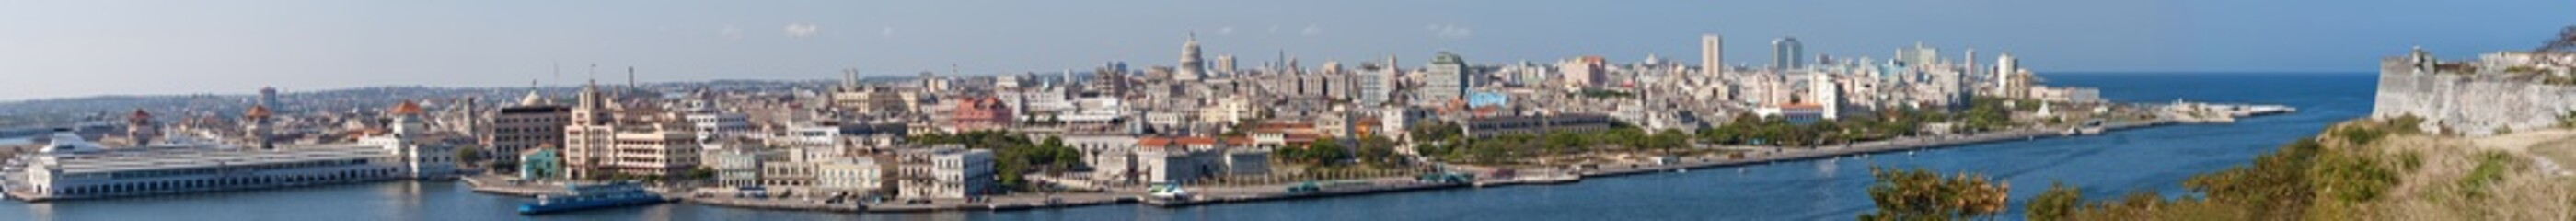 Highly detailed panoramic view of Havana